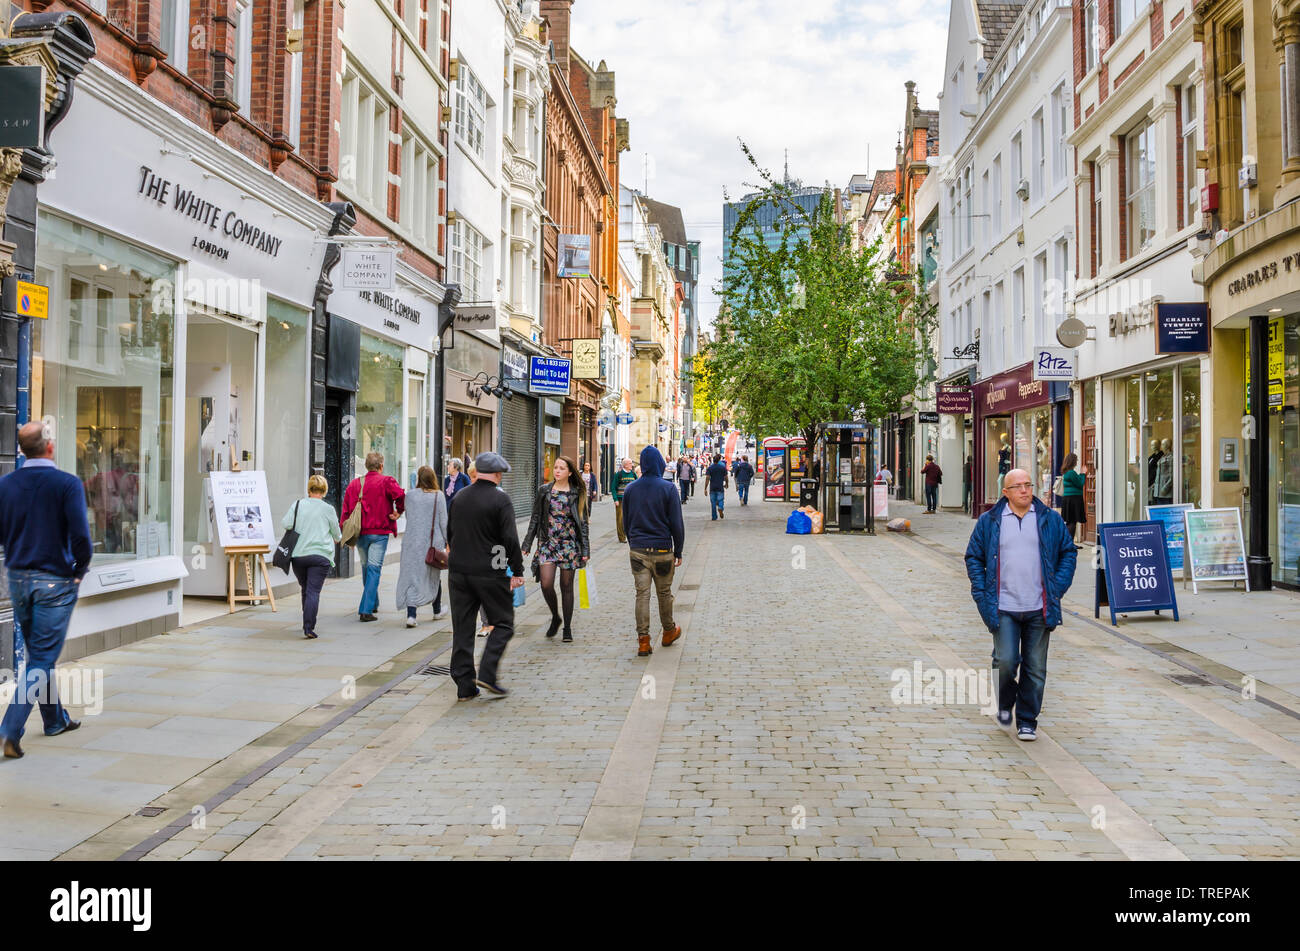 Shoppers and tourists strolling around King Street in central Manchester, UK, on a warm autumn day - Stock Image